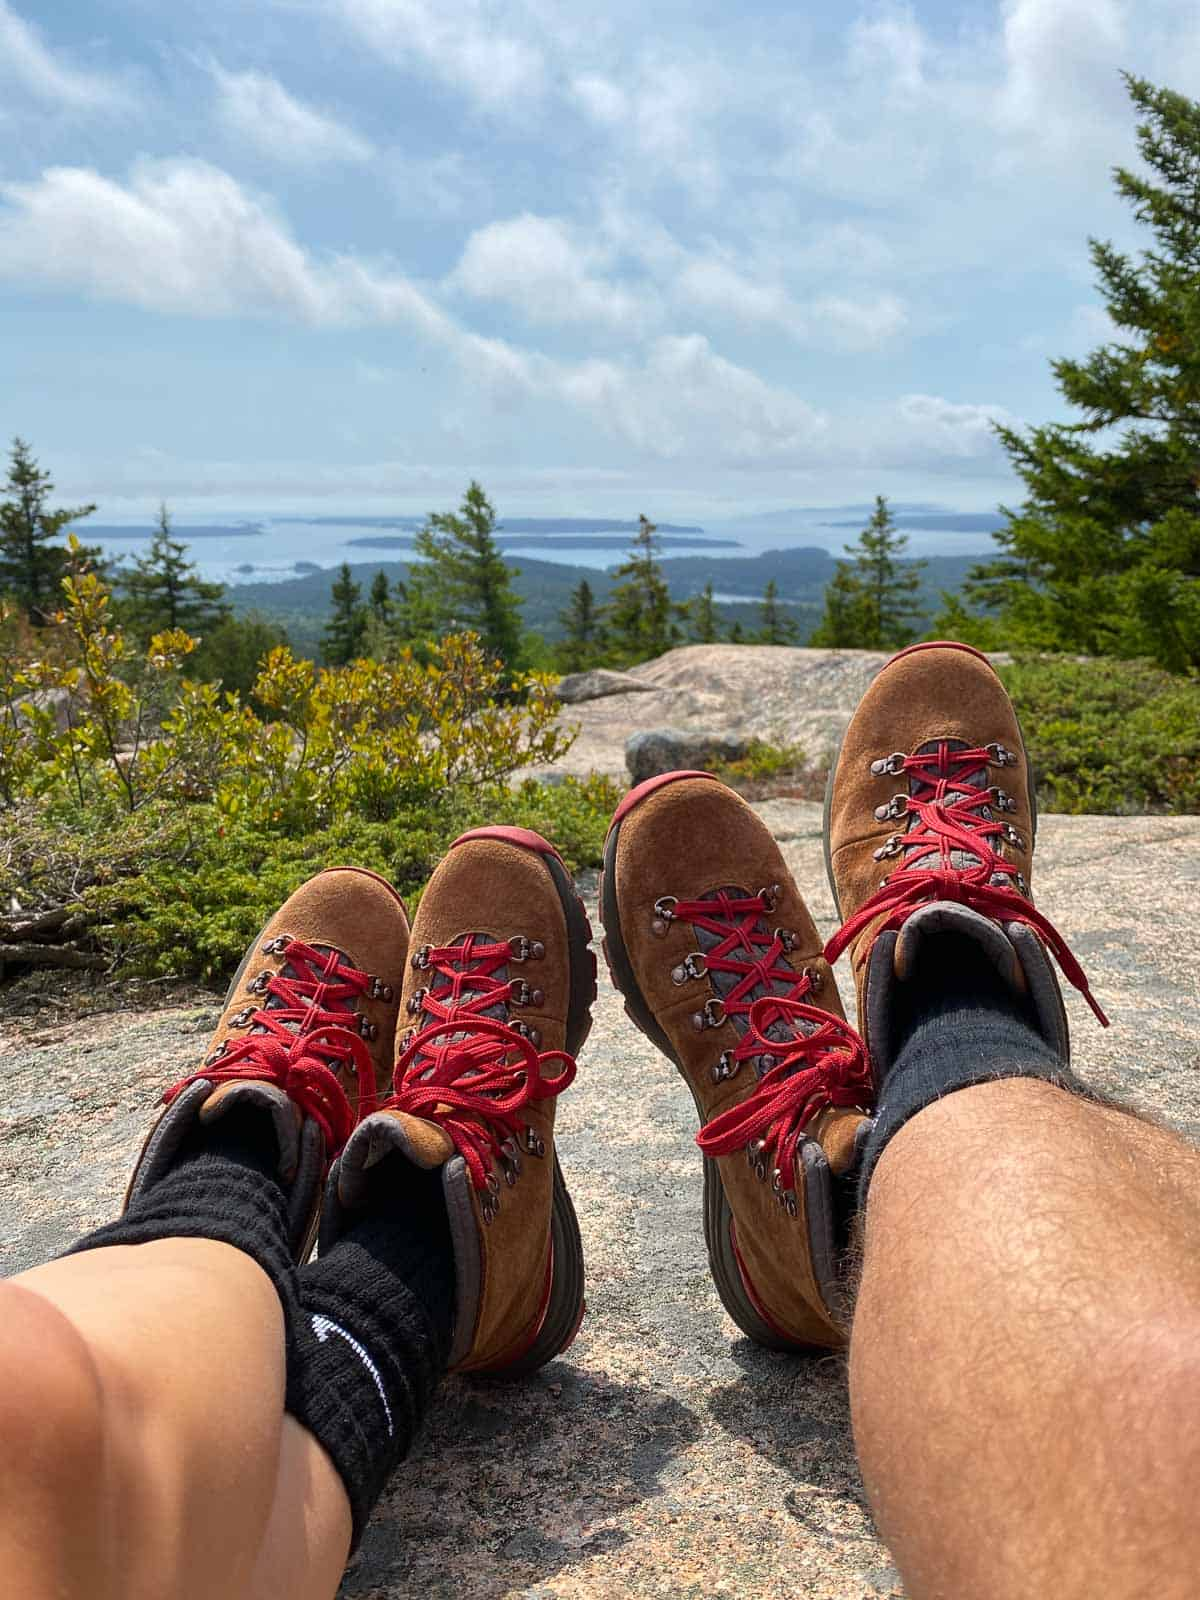 matching hiking boots being worn on a hike